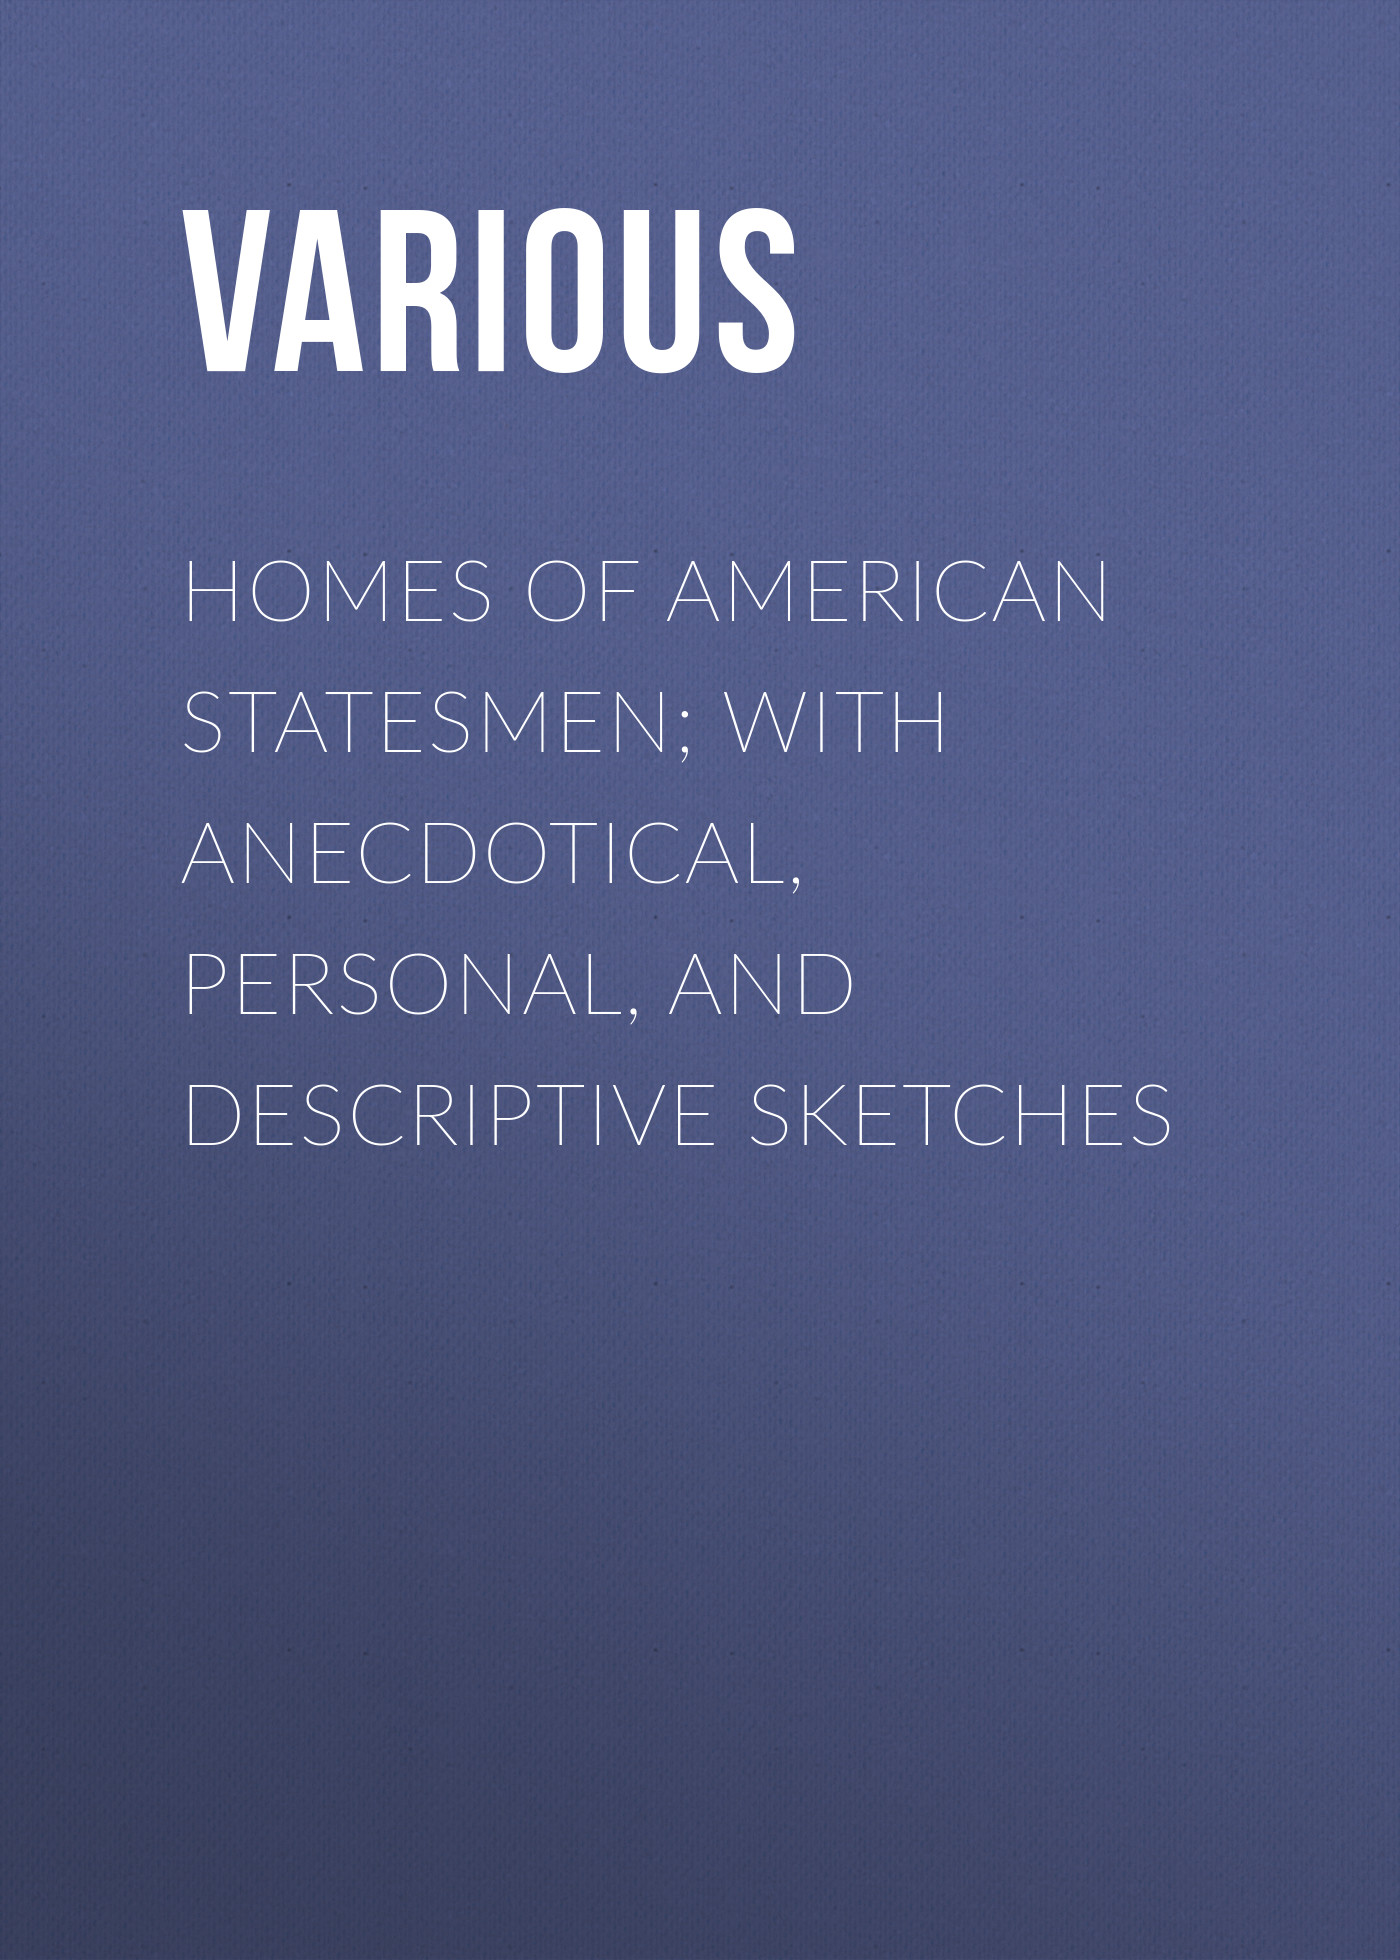 Various Homes of American Statesmen; With Anecdotical, Personal, and Descriptive Sketches american society of transplantation primer on transplantation isbn 9781444391756